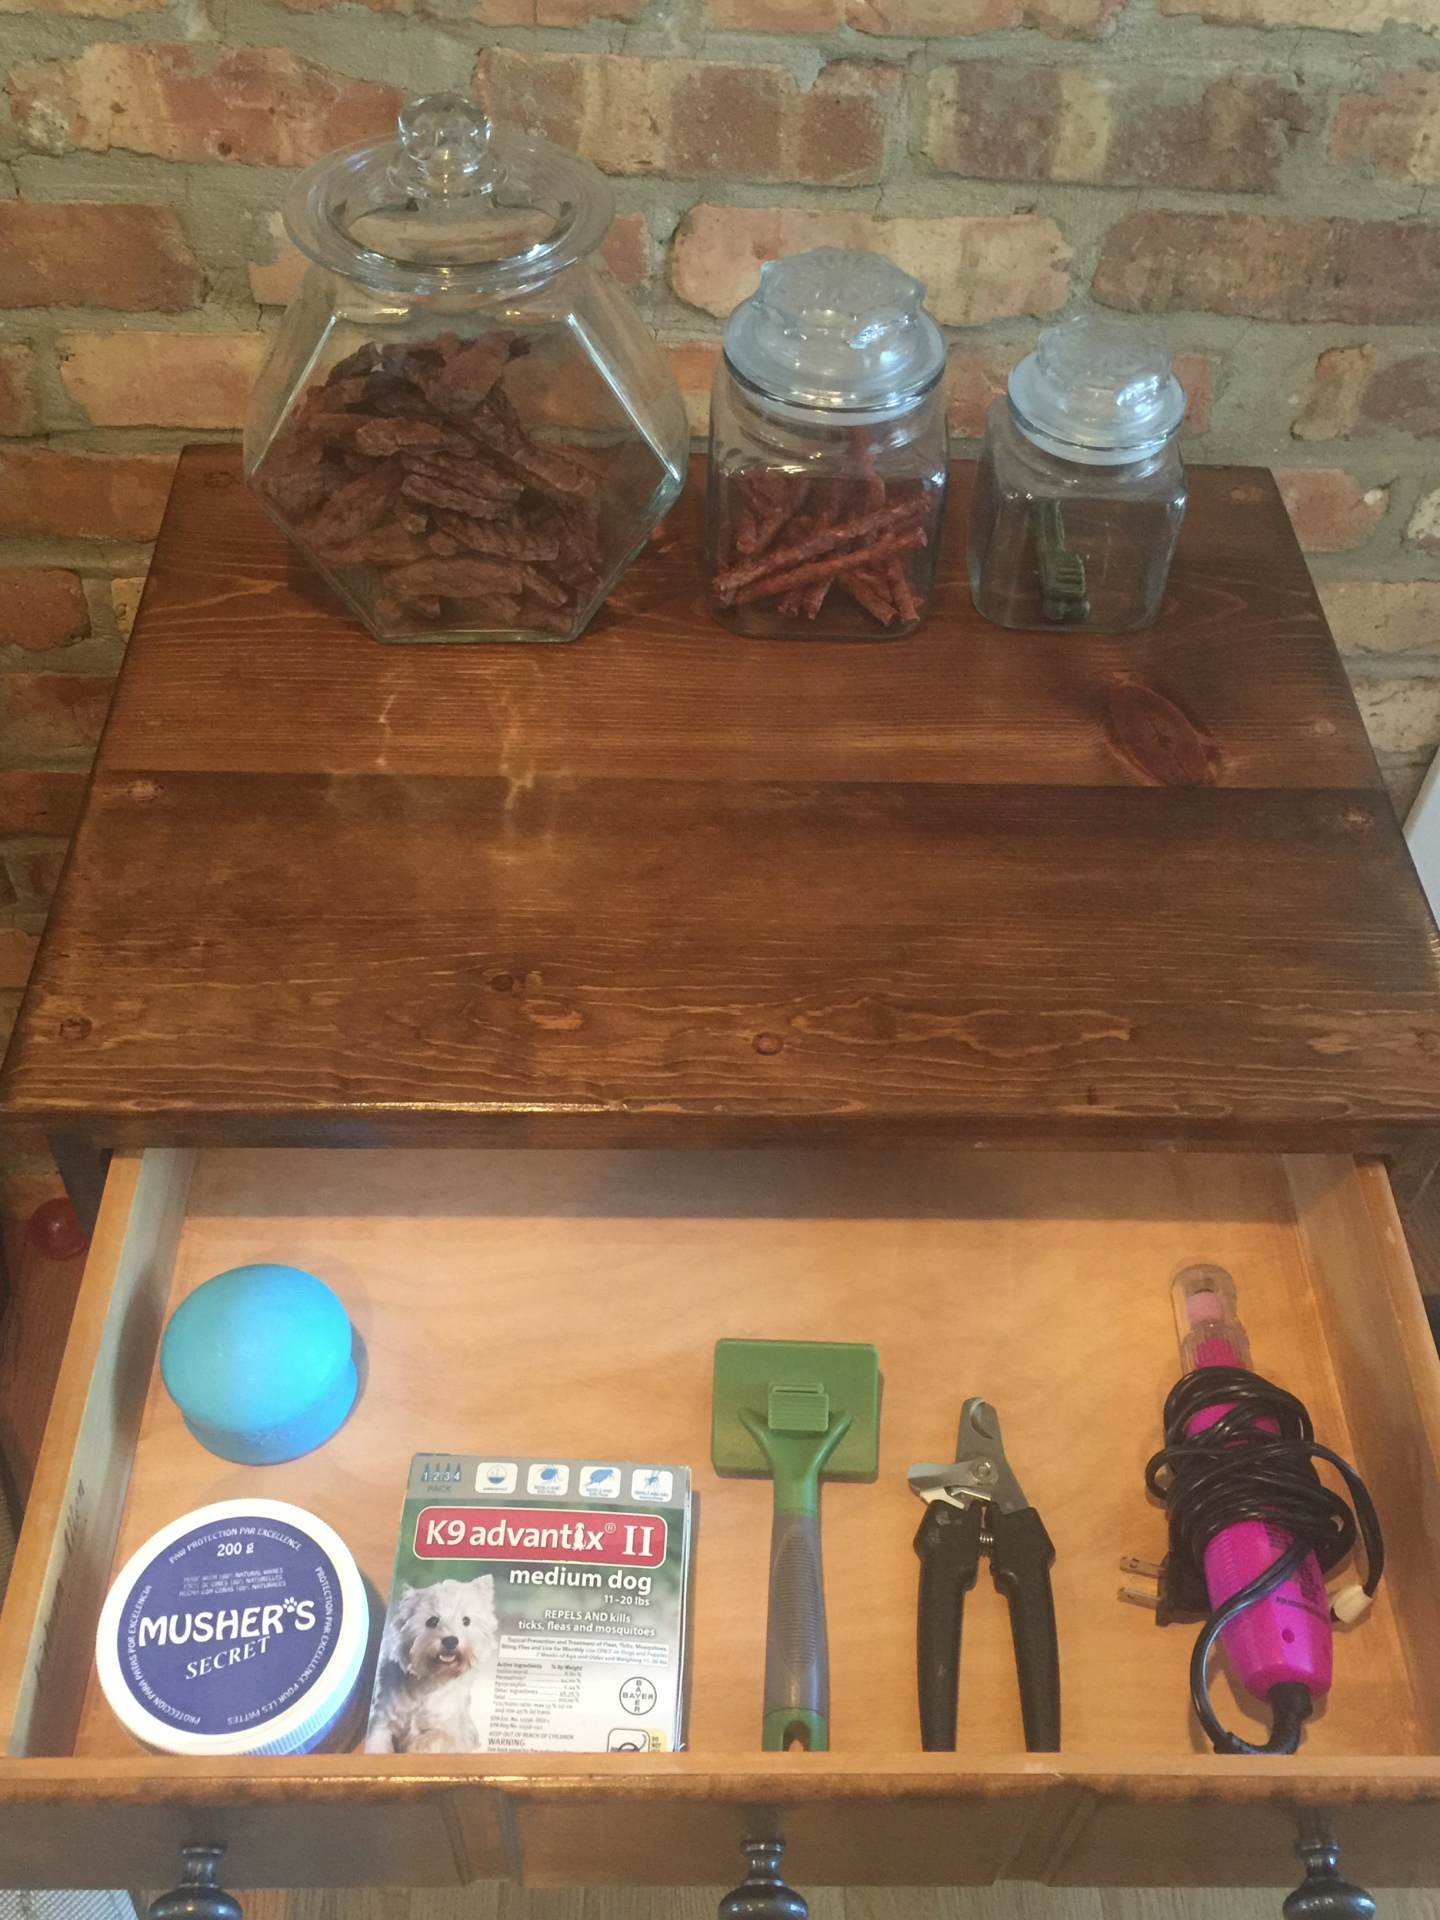 Top Drawer for Dog Supplies